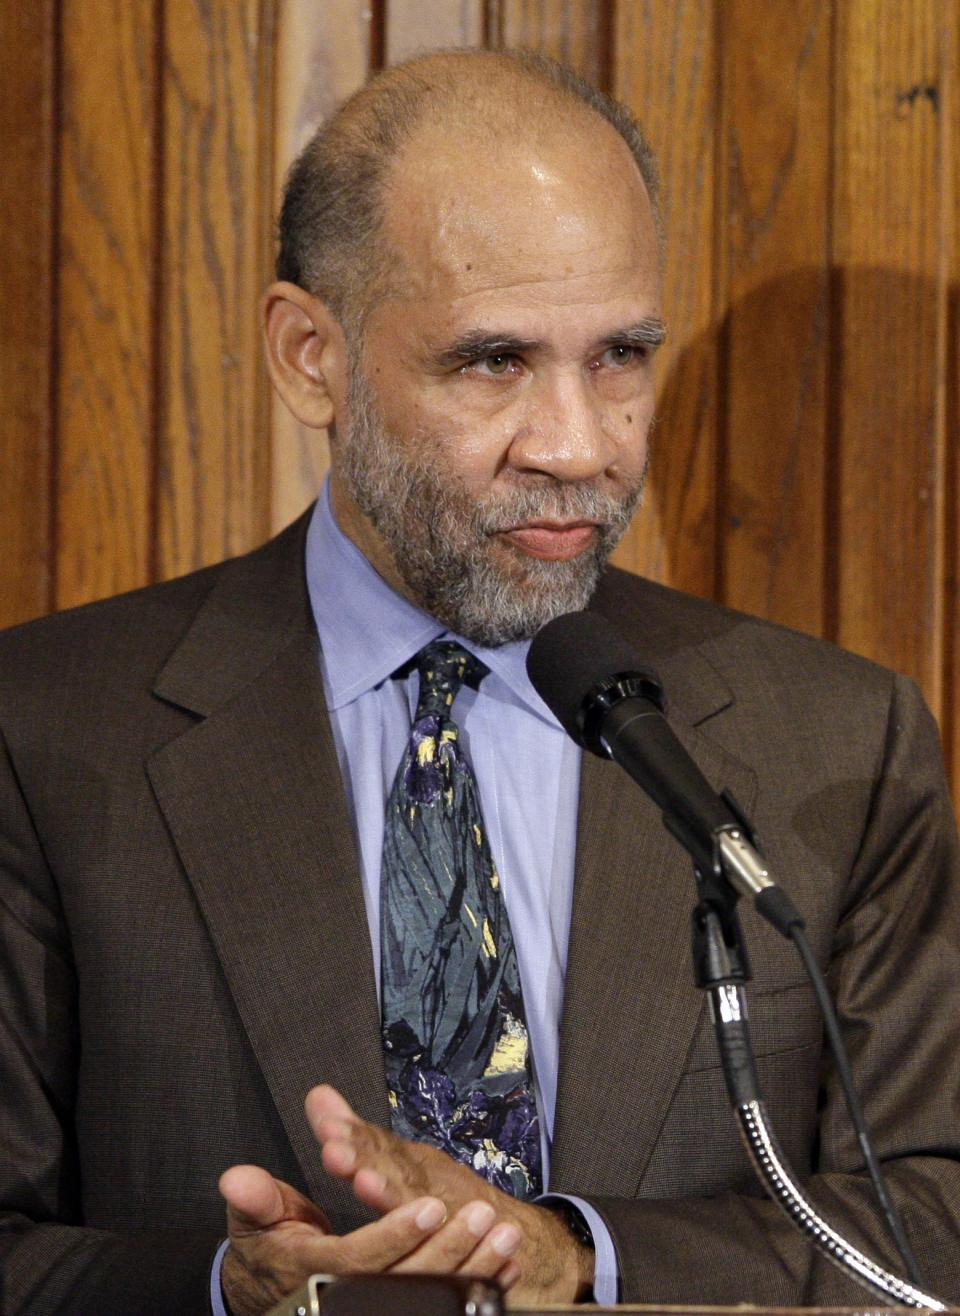 FILE - This file photo of May 13, 2009 shows NAACP Legal Defense Fund President and Director John Payton  during a NAACP Legal Defense and Educational Fund luncheon at the National Press Club in Washington. Payton died on Thursday, March 22, 2012 after a brief illness. He was 65.(AP Photo/Alex Brandon, File)